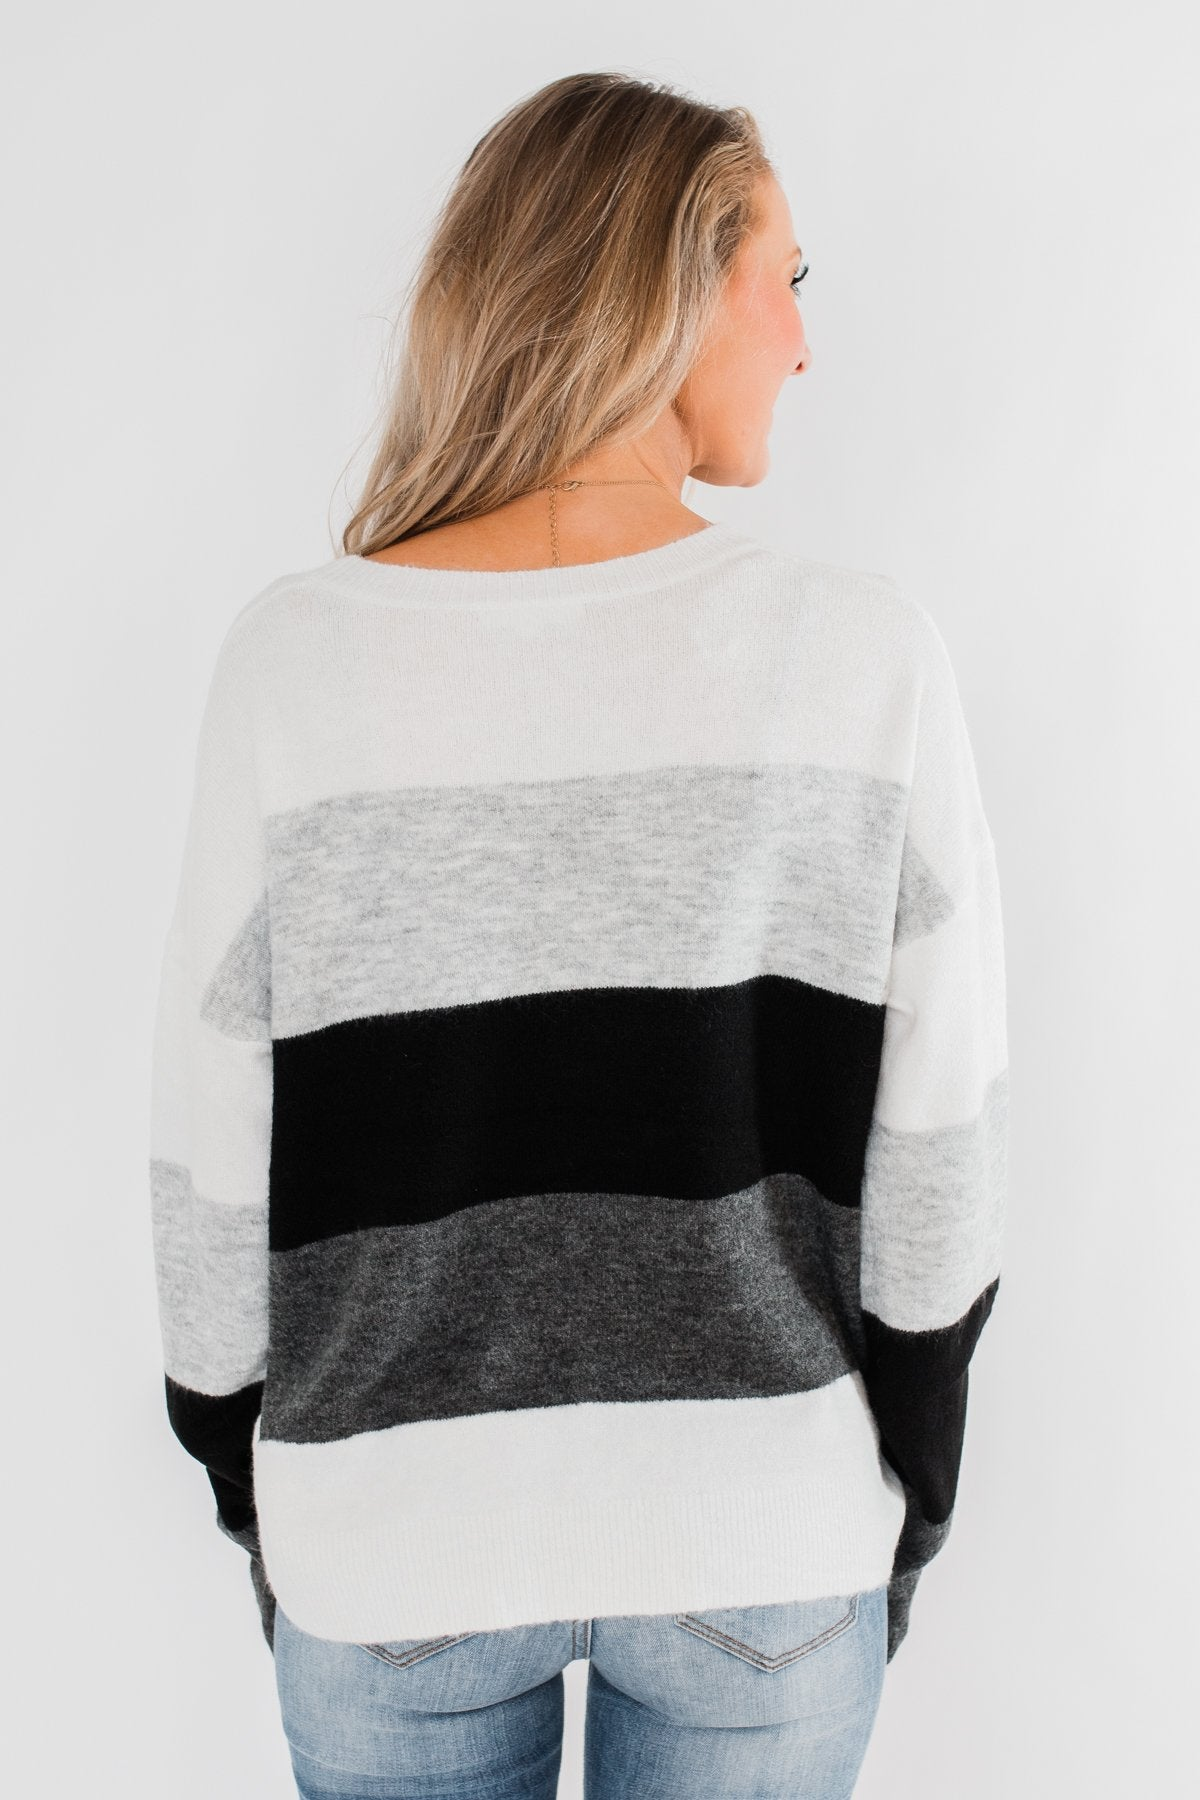 Mountain Getaway Color Block Sweater- Onyx Tones